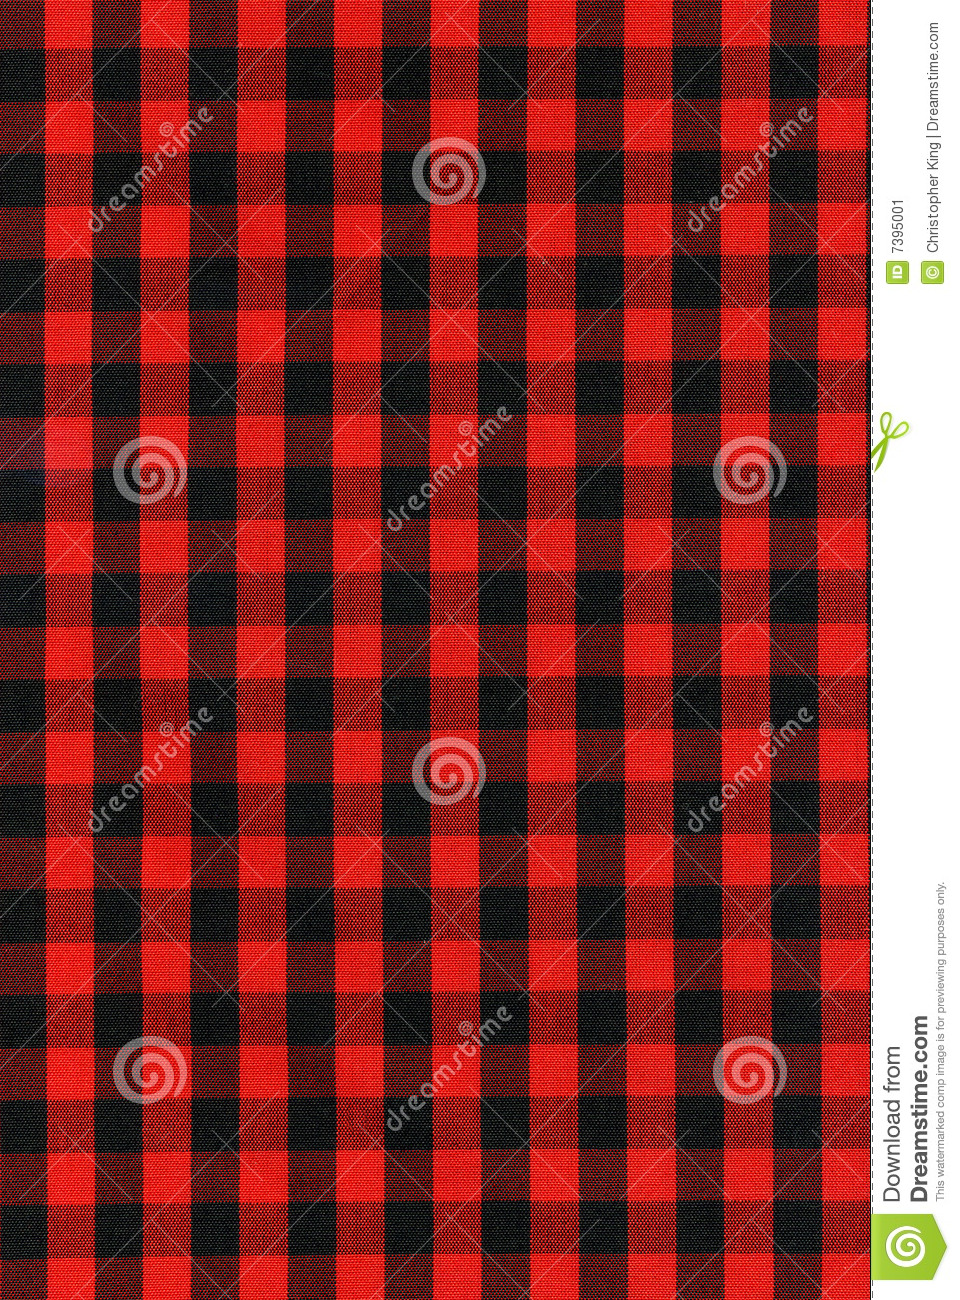 Red And Black Checkered Fabric Texture Stock Image Image